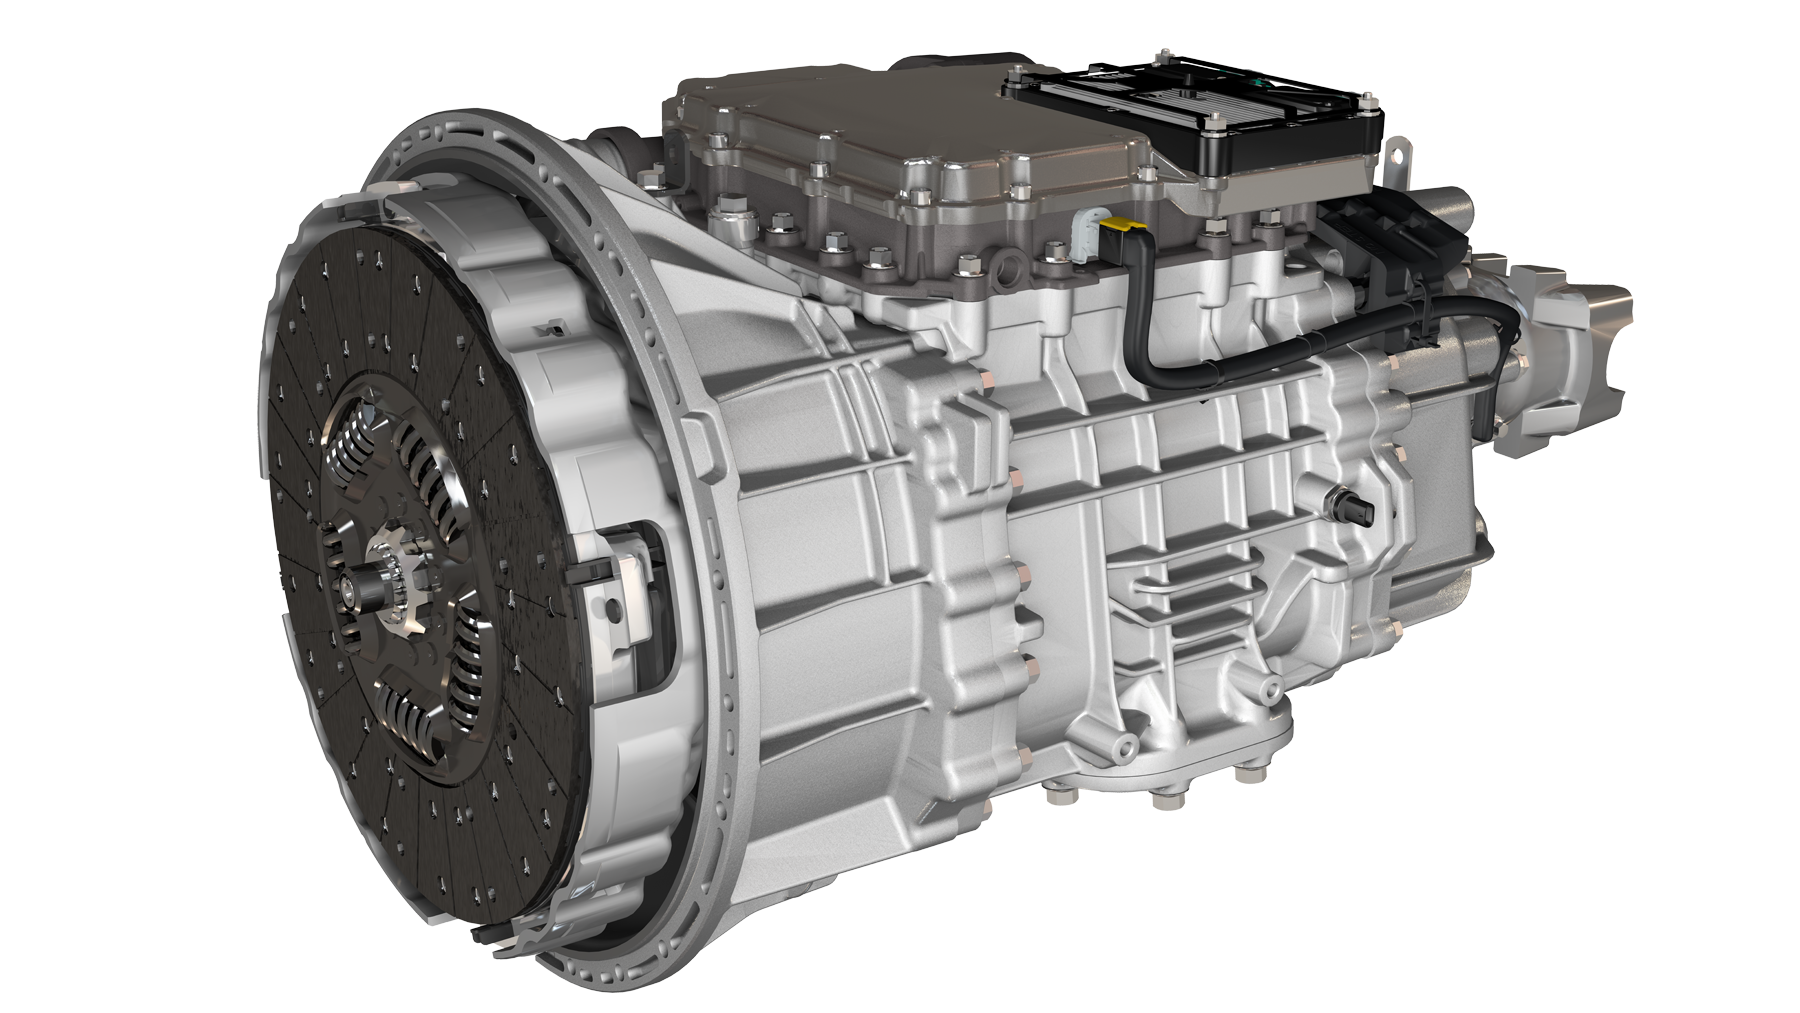 First transmission from Eaton-Cummins joint venture